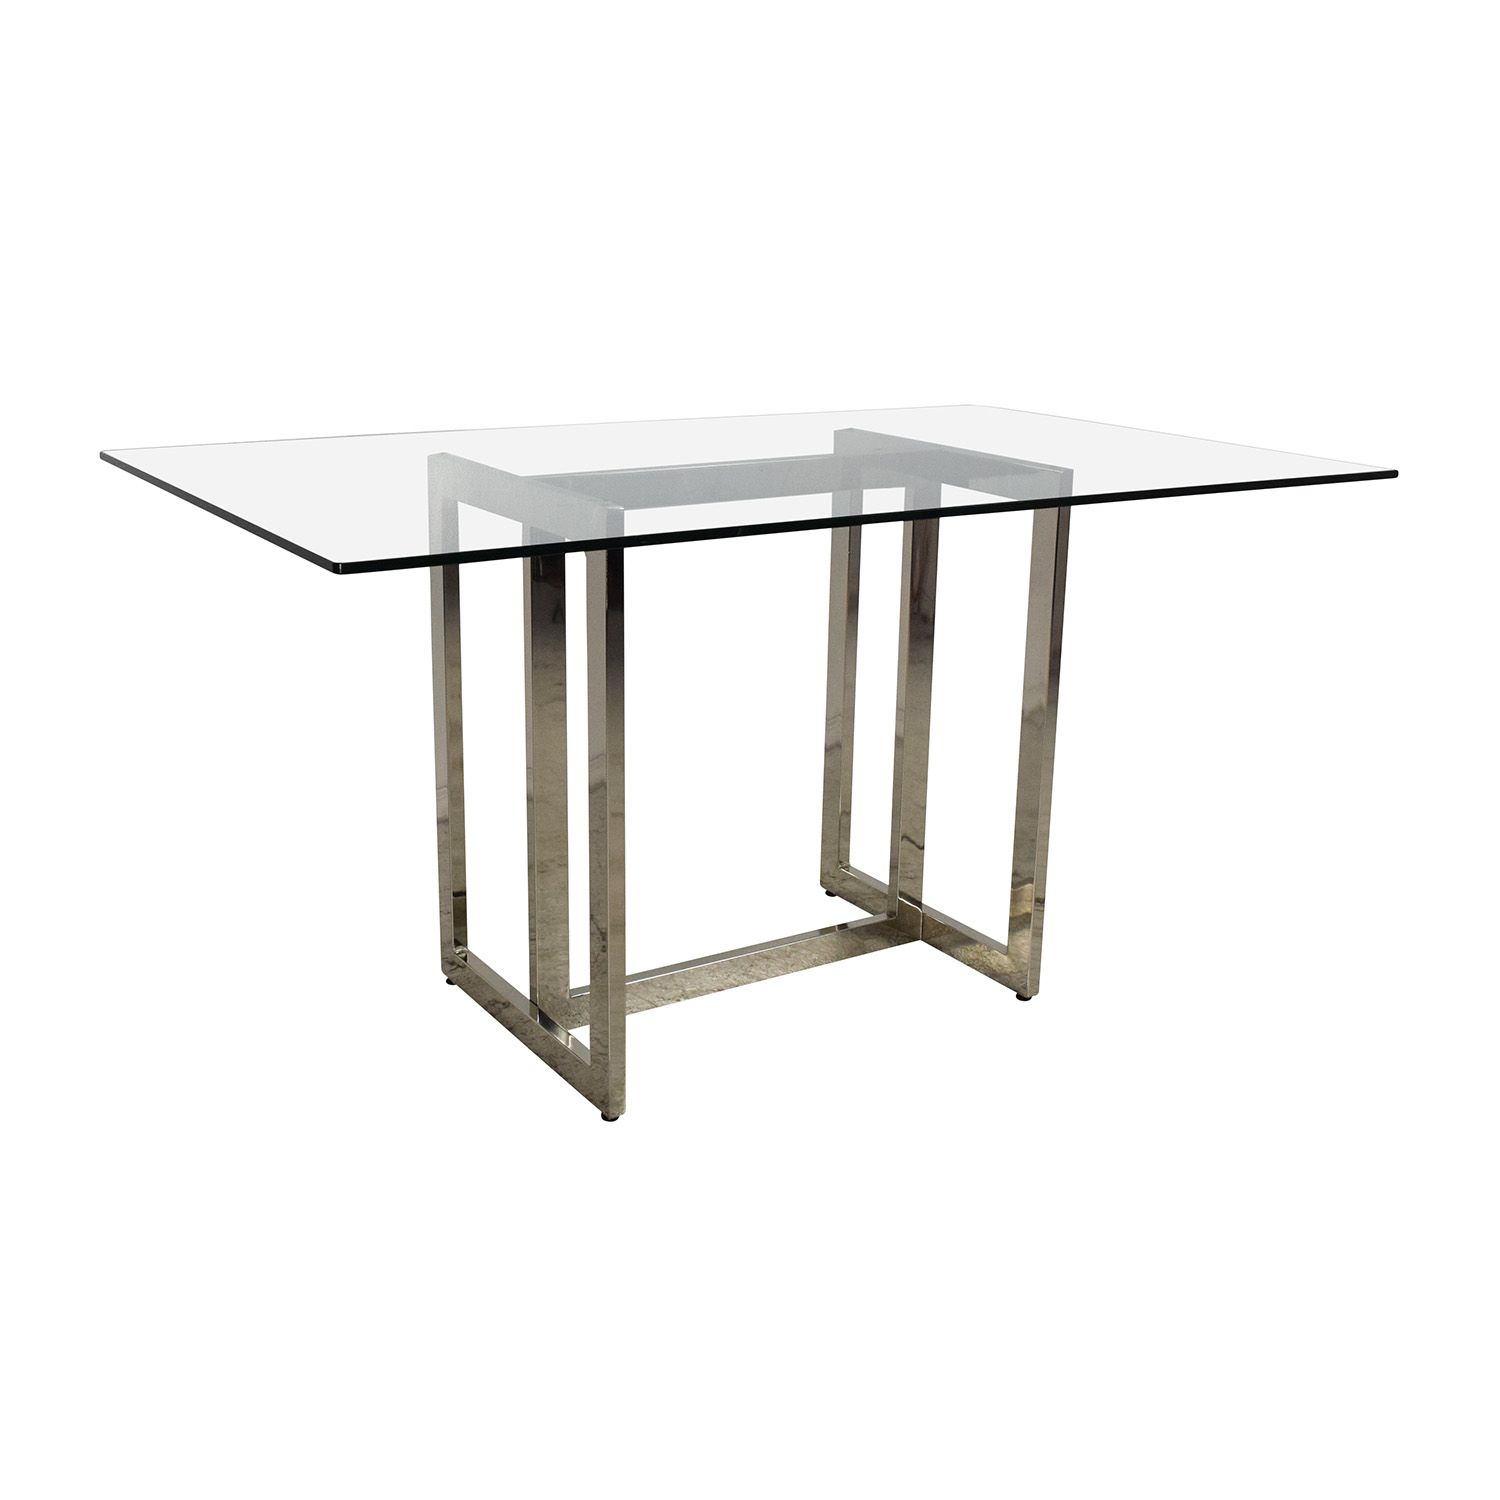 West Elm Hicks Glass Top Dining Table - West elm glass top dining table